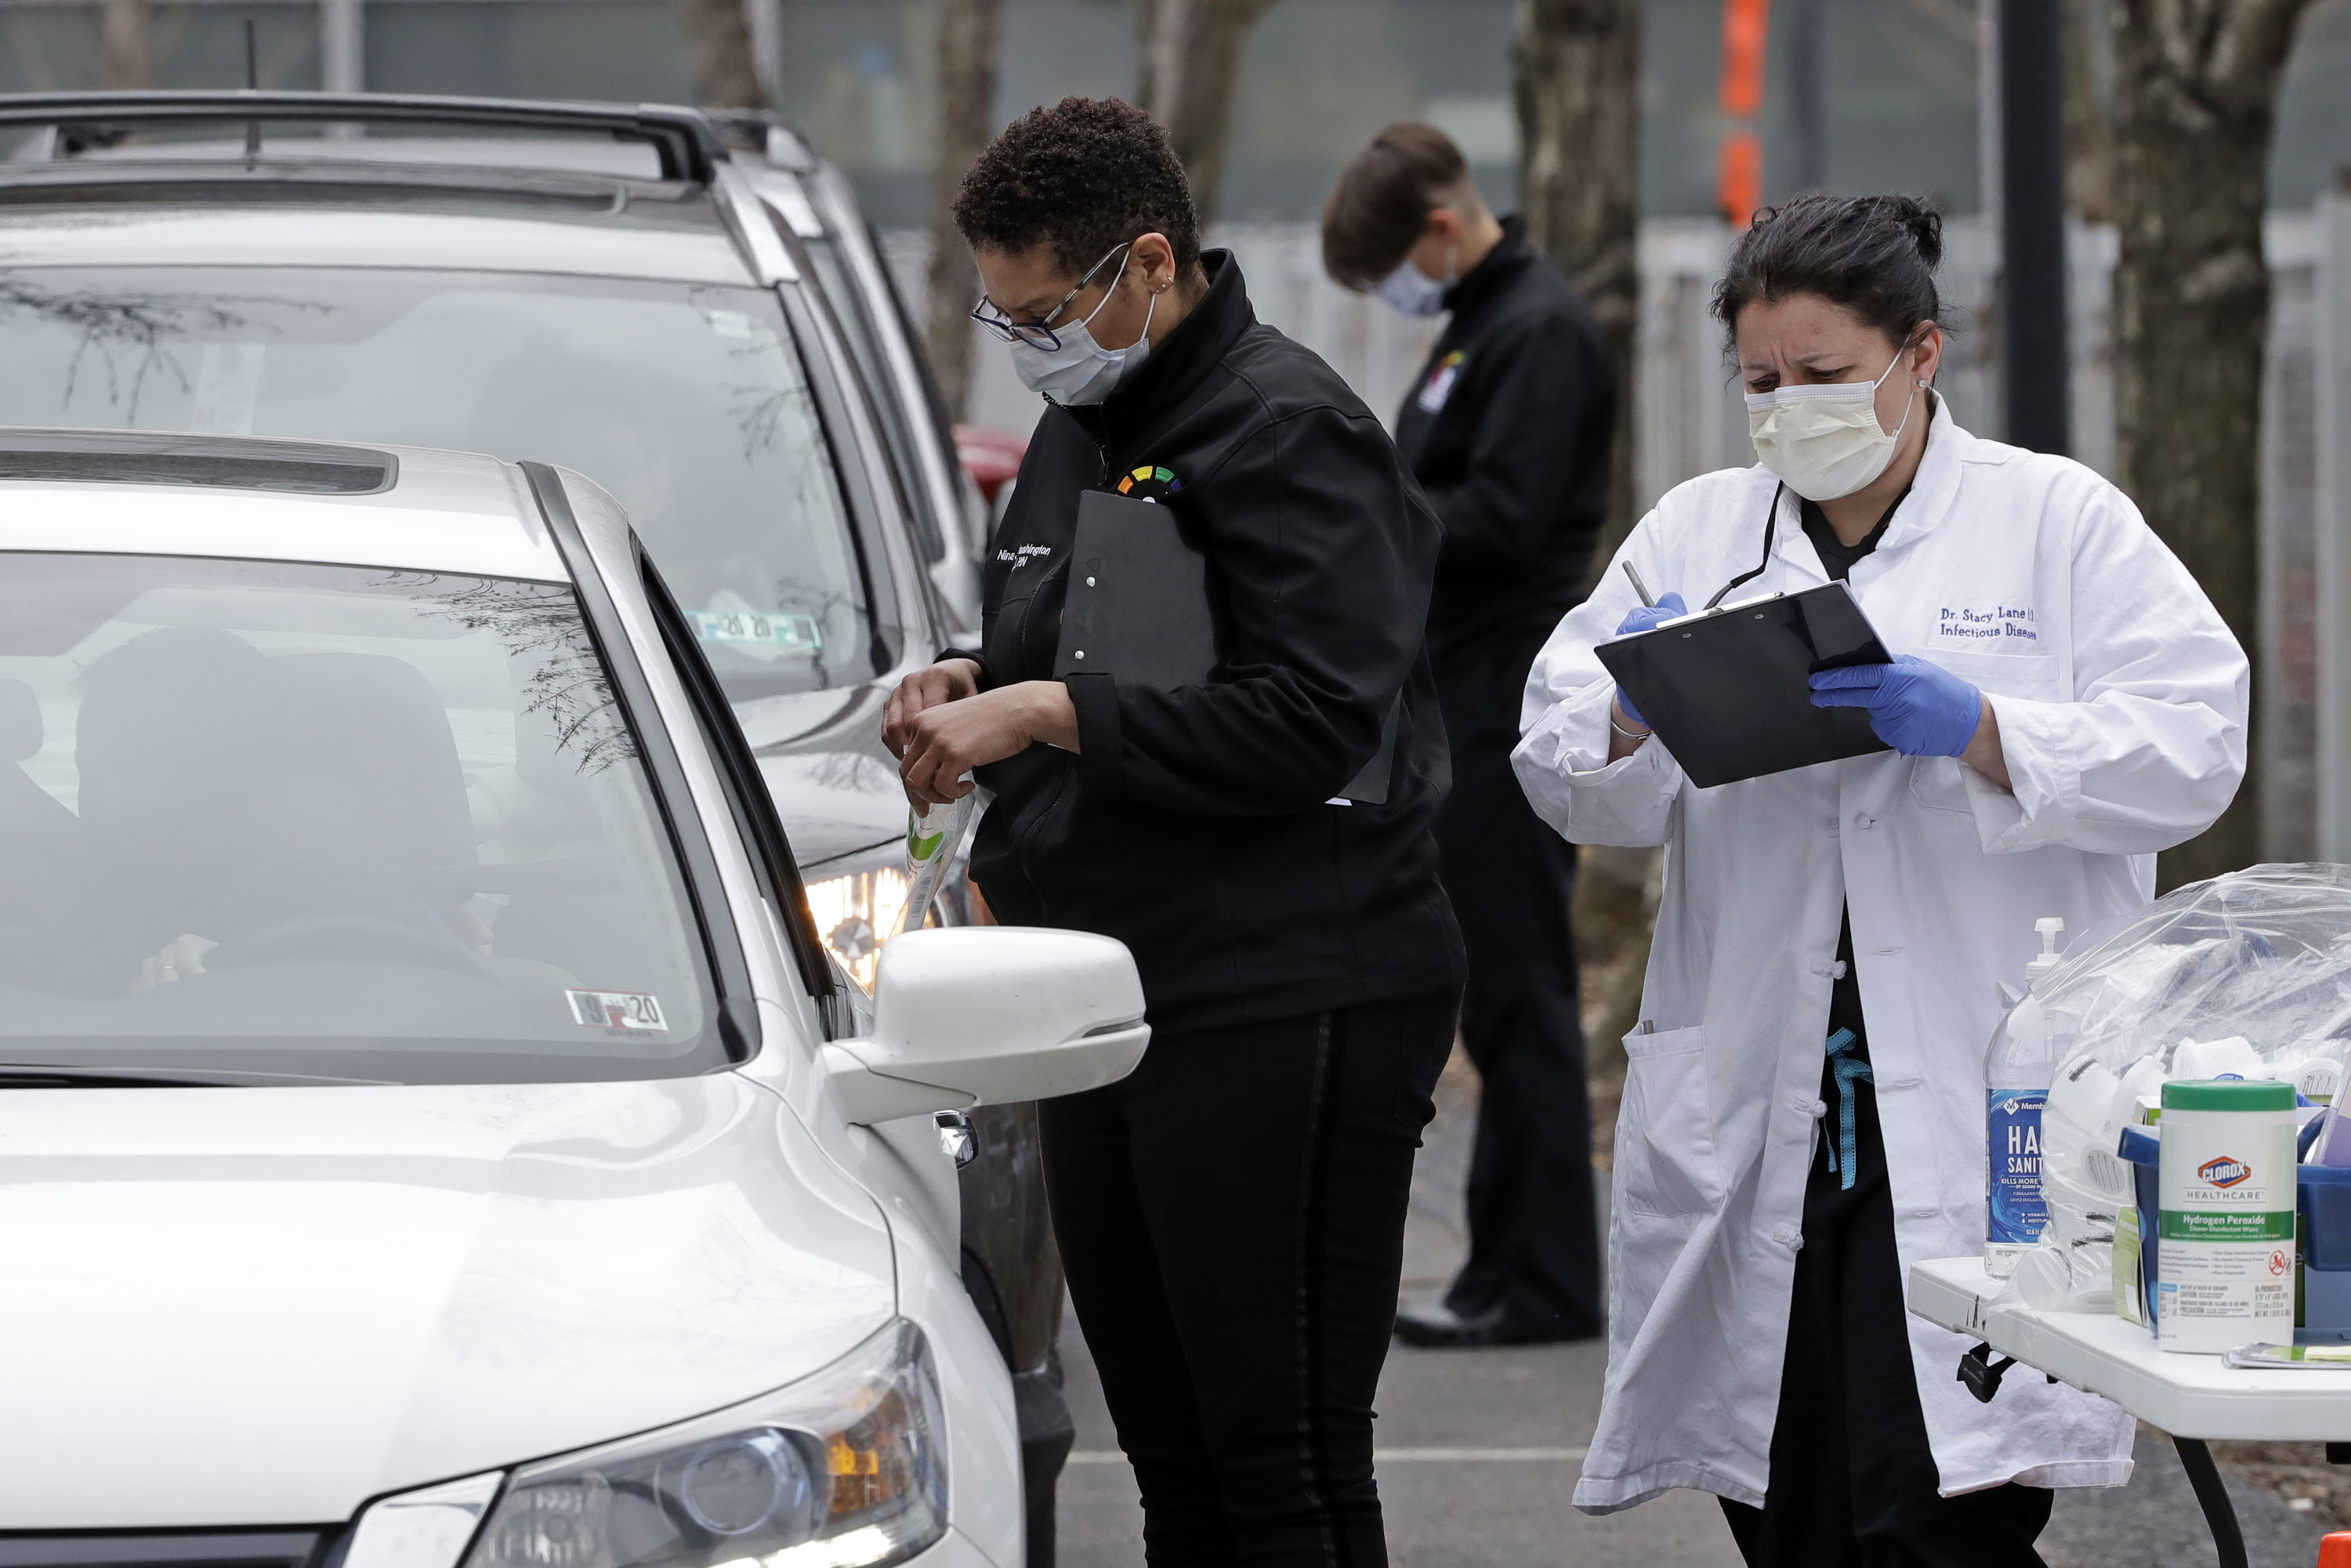 People in cars line up in Pittsburgh on March 16 for drive-by Covid-19 testing. The testing is done in partnership with Quest Diagnostics.